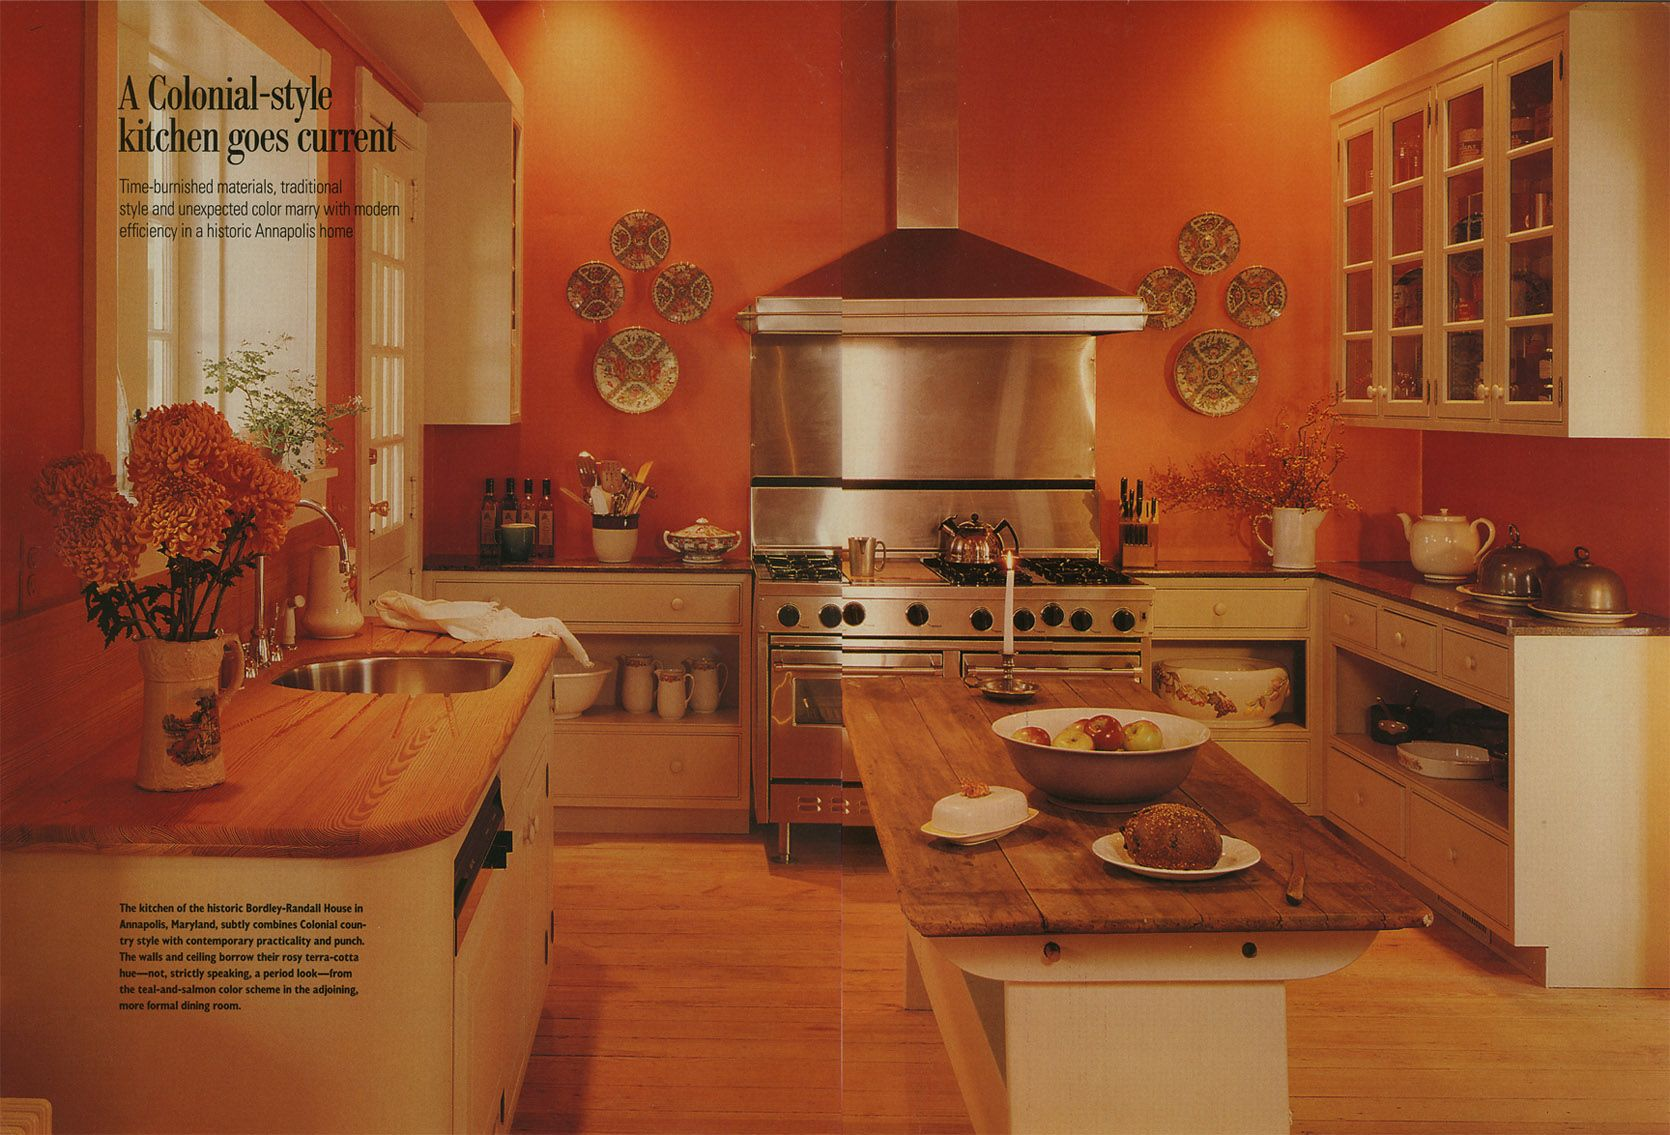 Kitchen With Orange Walls Cream Cabinets And Wooden Counters Home Magazine May 1991 Orange Kitchen Walls Burnt Orange Kitchen Orange Kitchen